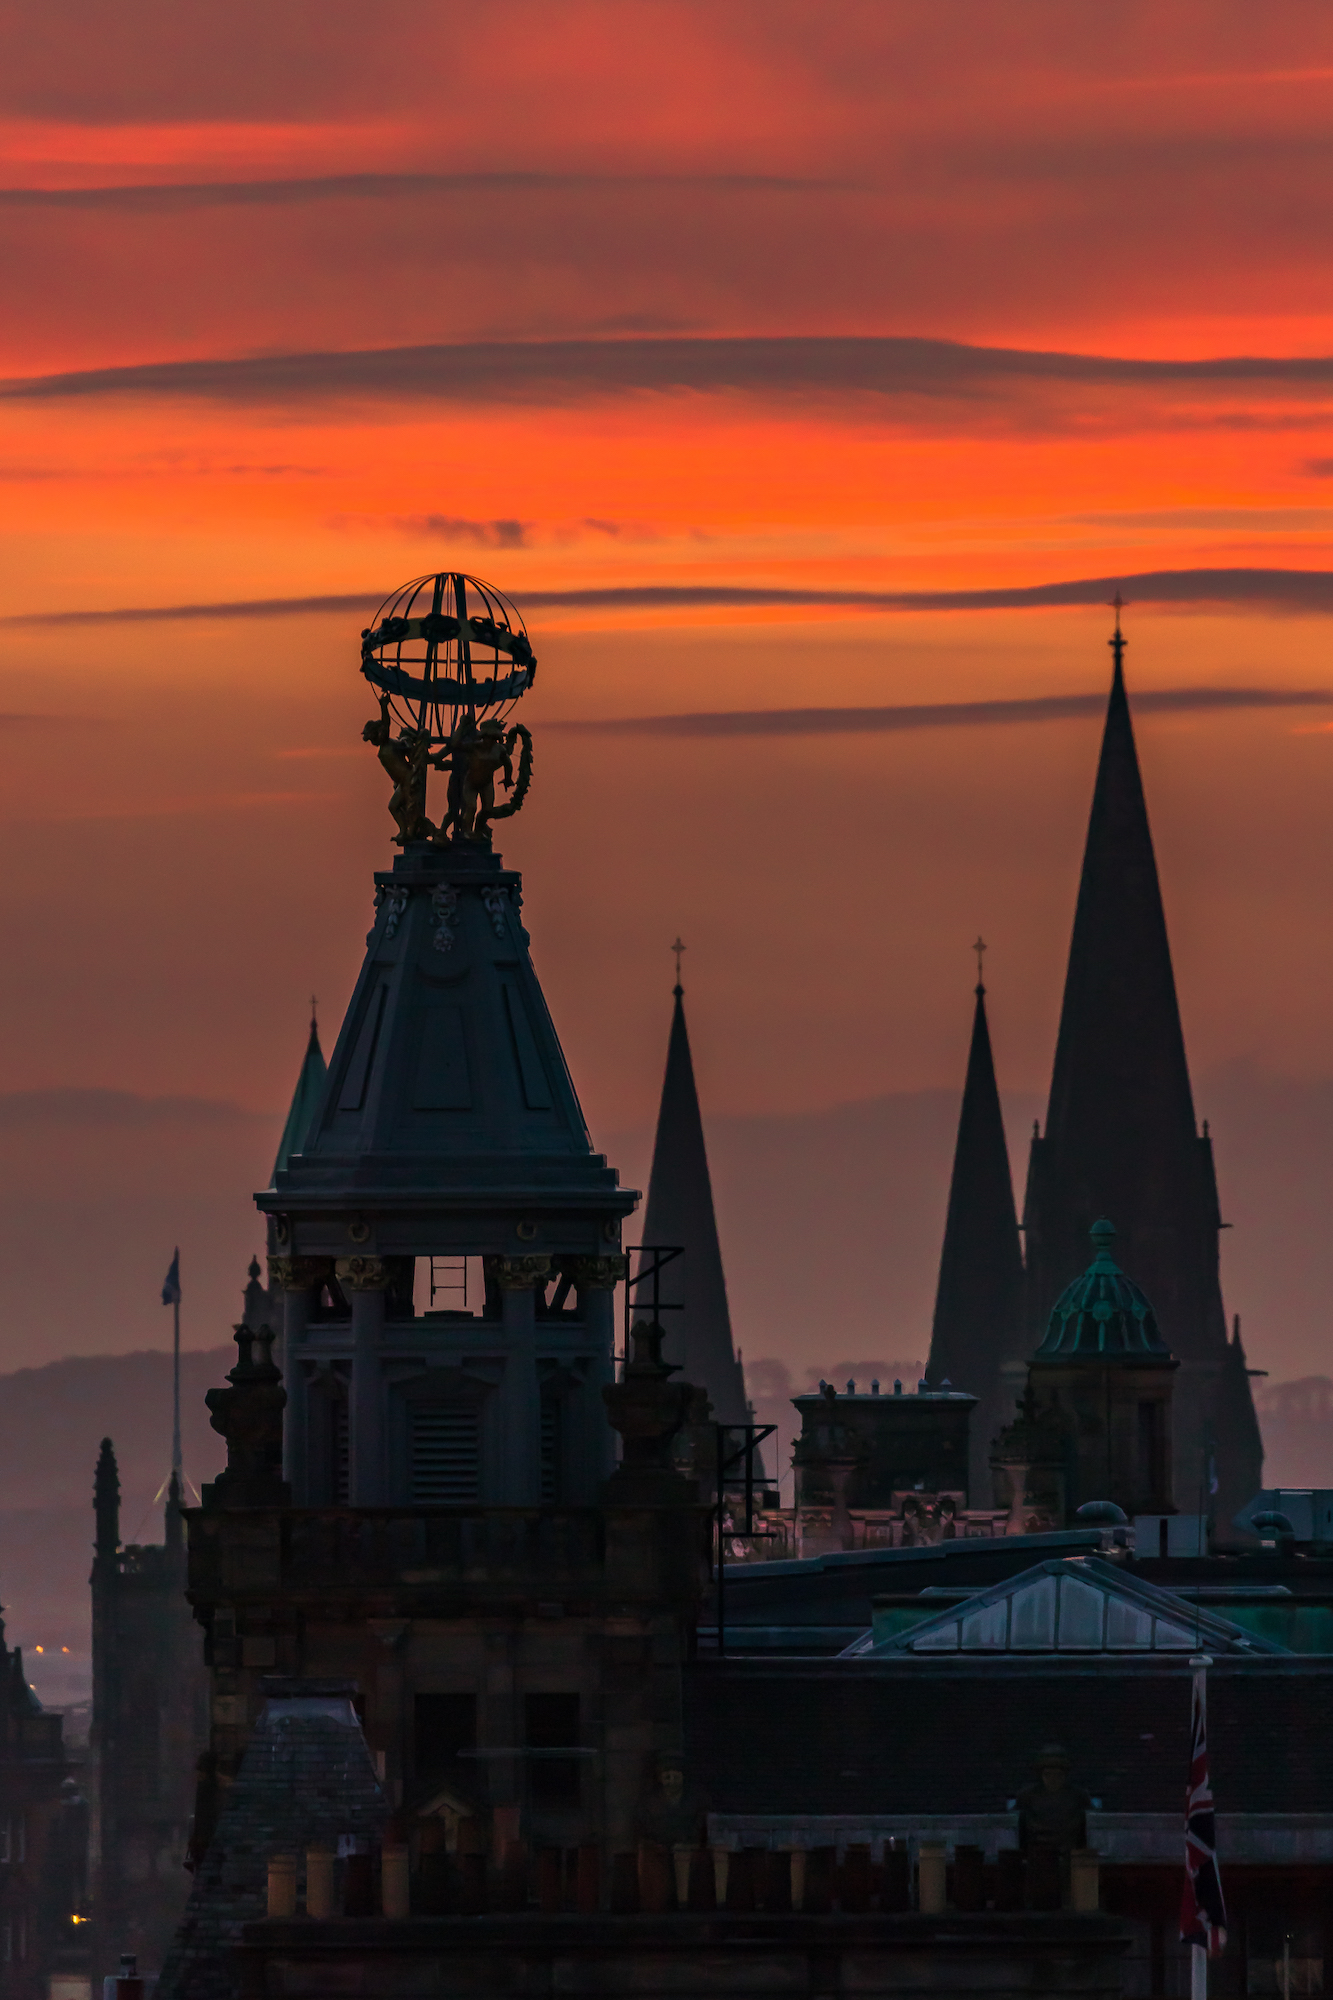 (946) The Forsyth Armillary Sphere and Spires of St Mary's Cathedral, Red Winter Sunset, Princes Street, Edinburgh, Scotland.jpg